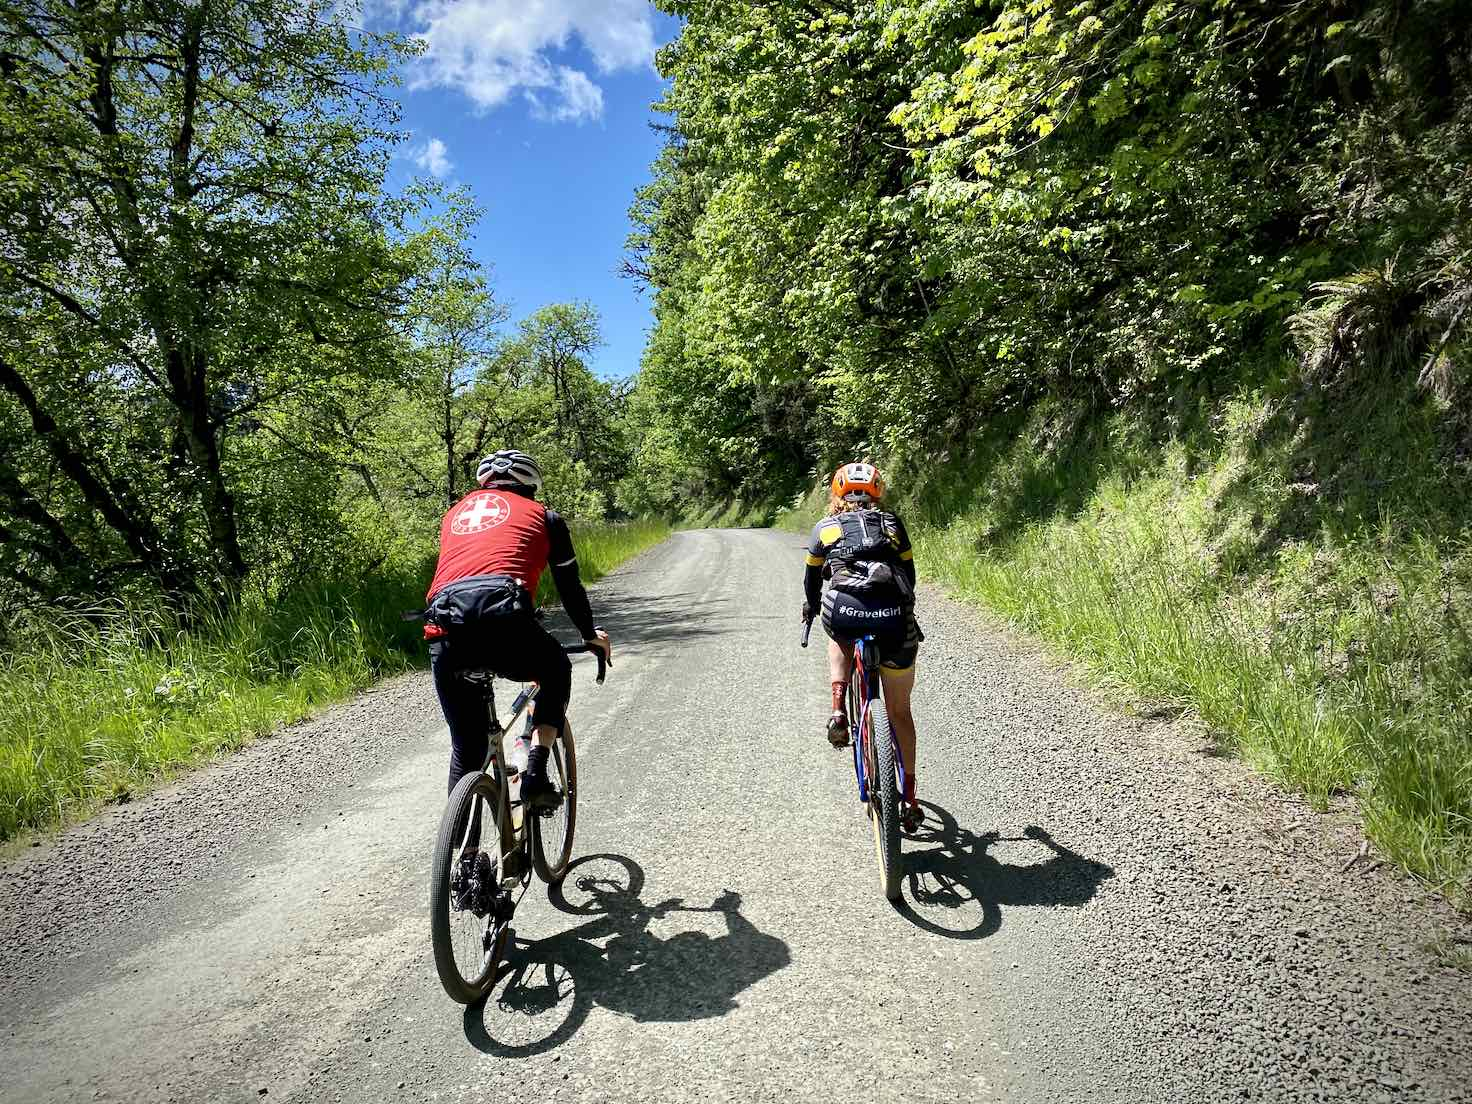 Two cyclists riding the gravel road towards Big Elk campground.